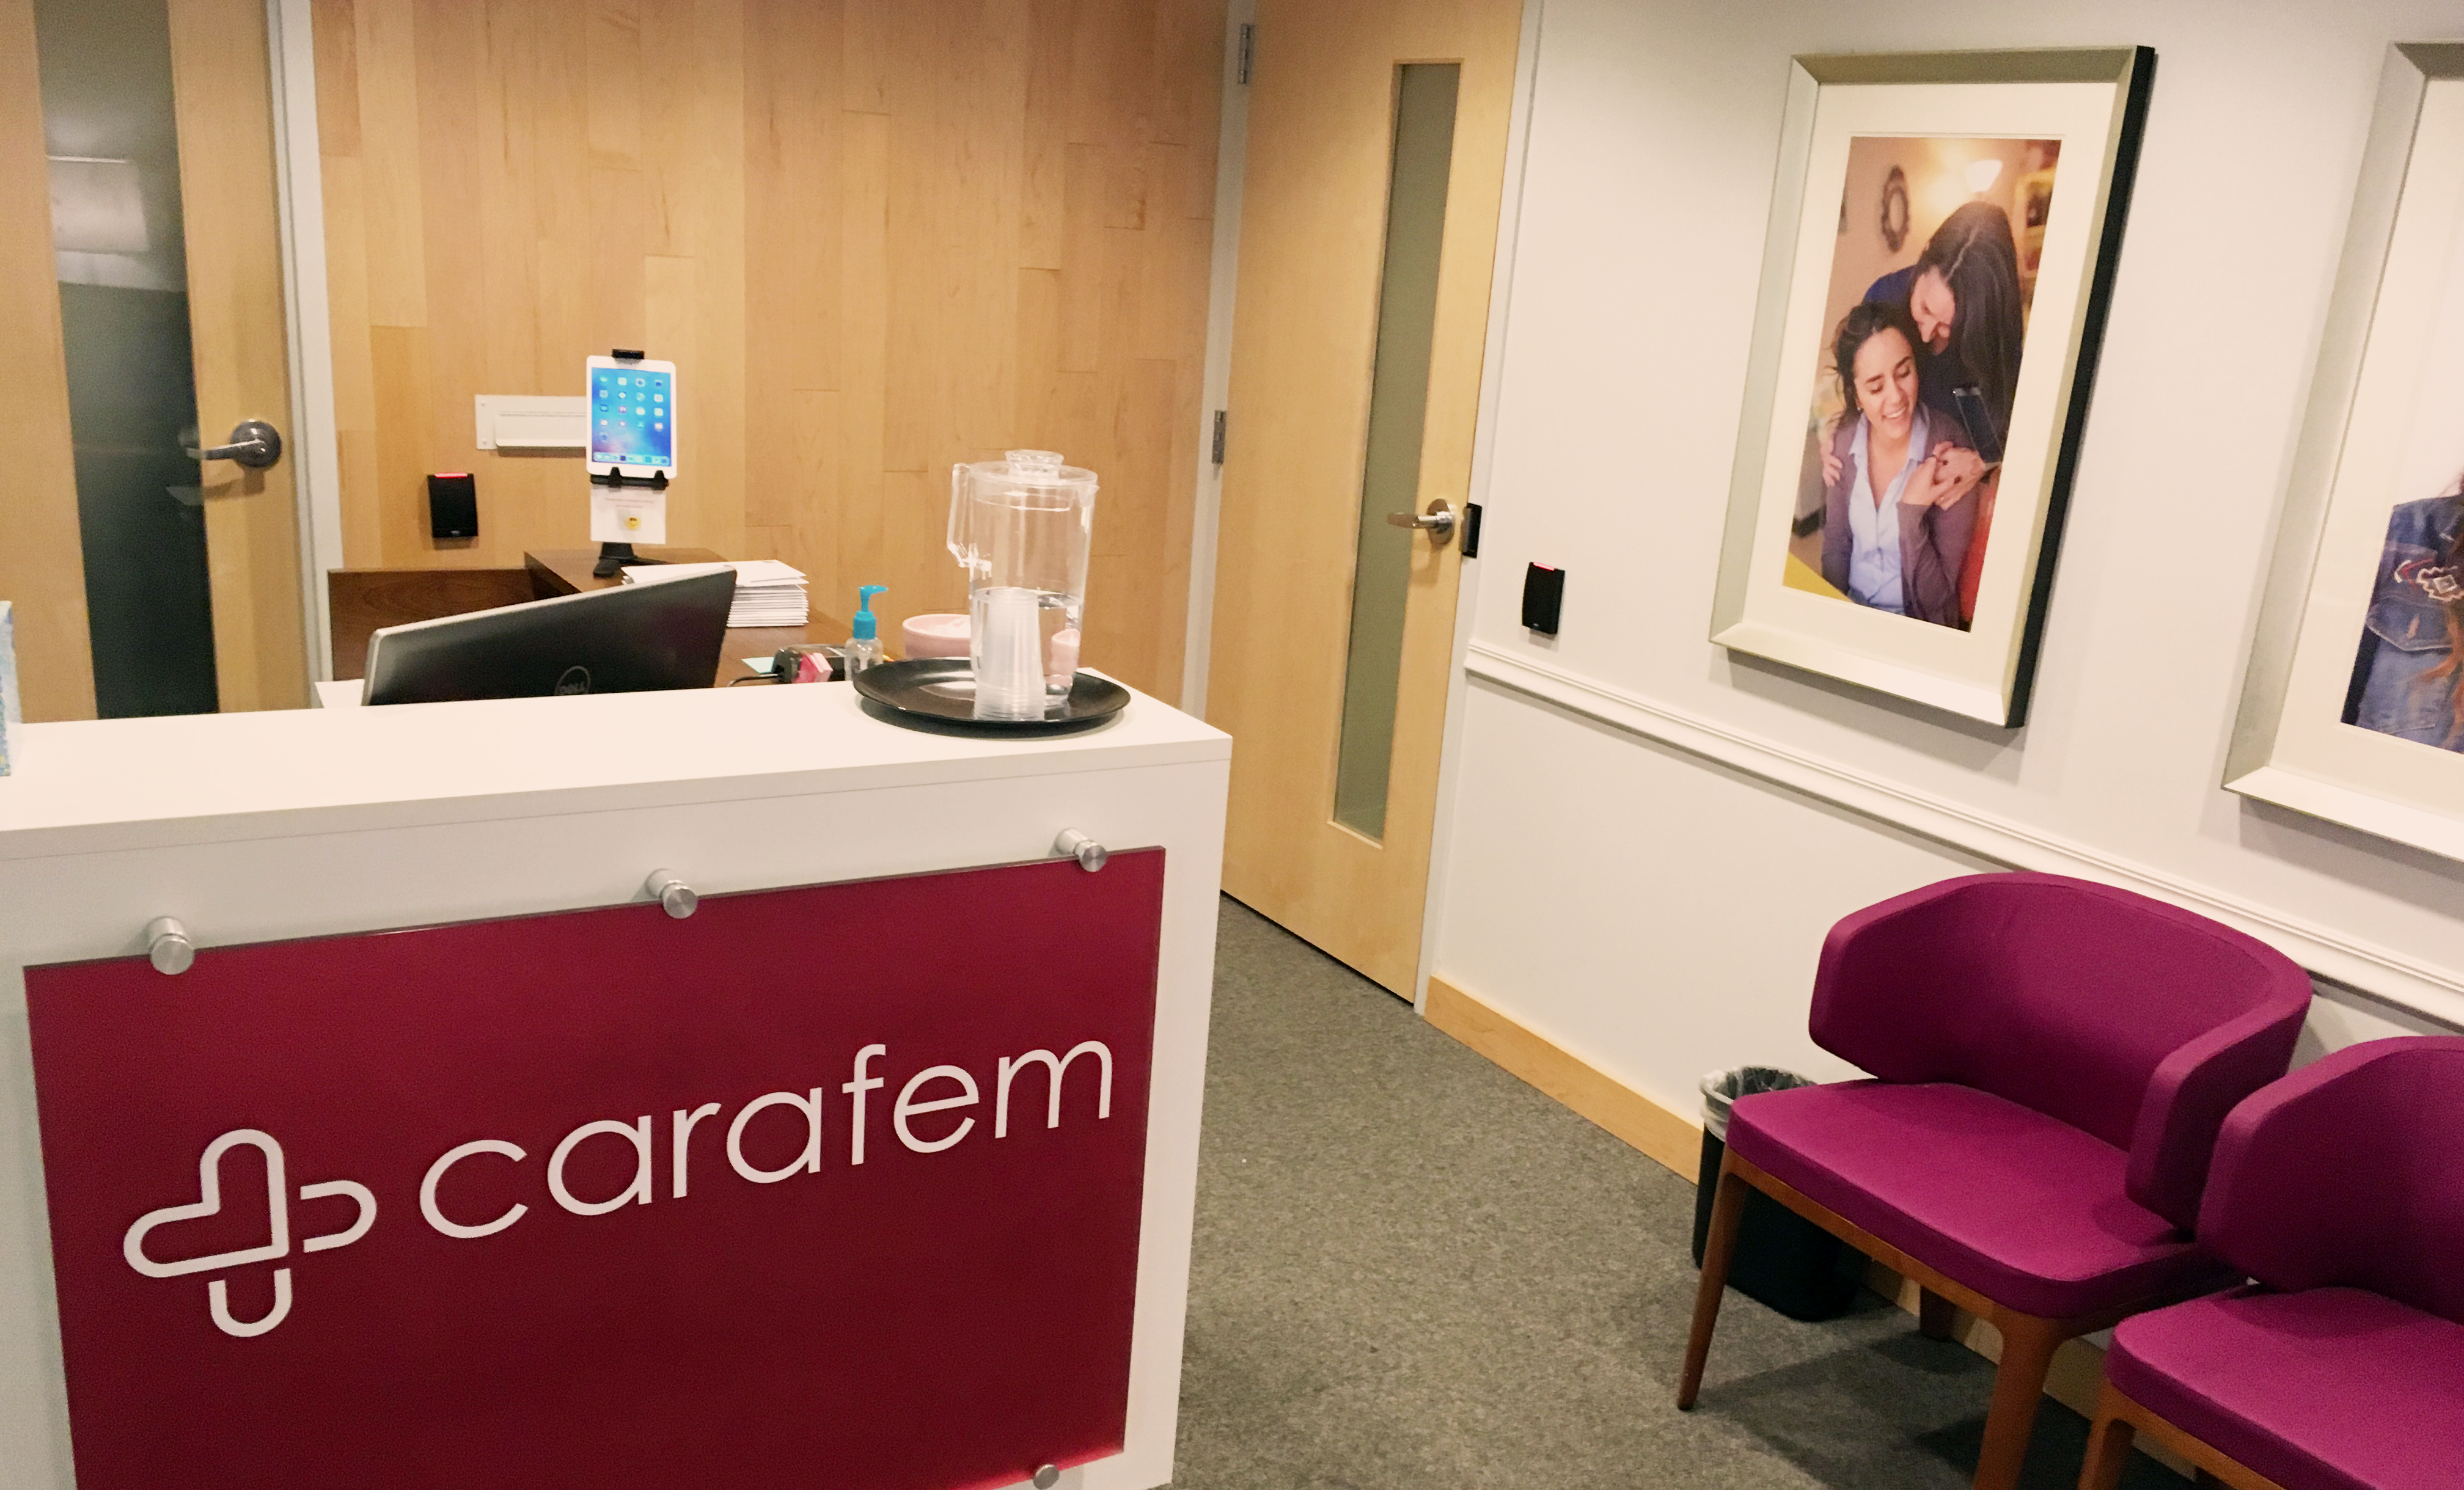 carafem Washington D.C. Chevy Chase Abortion Clinic